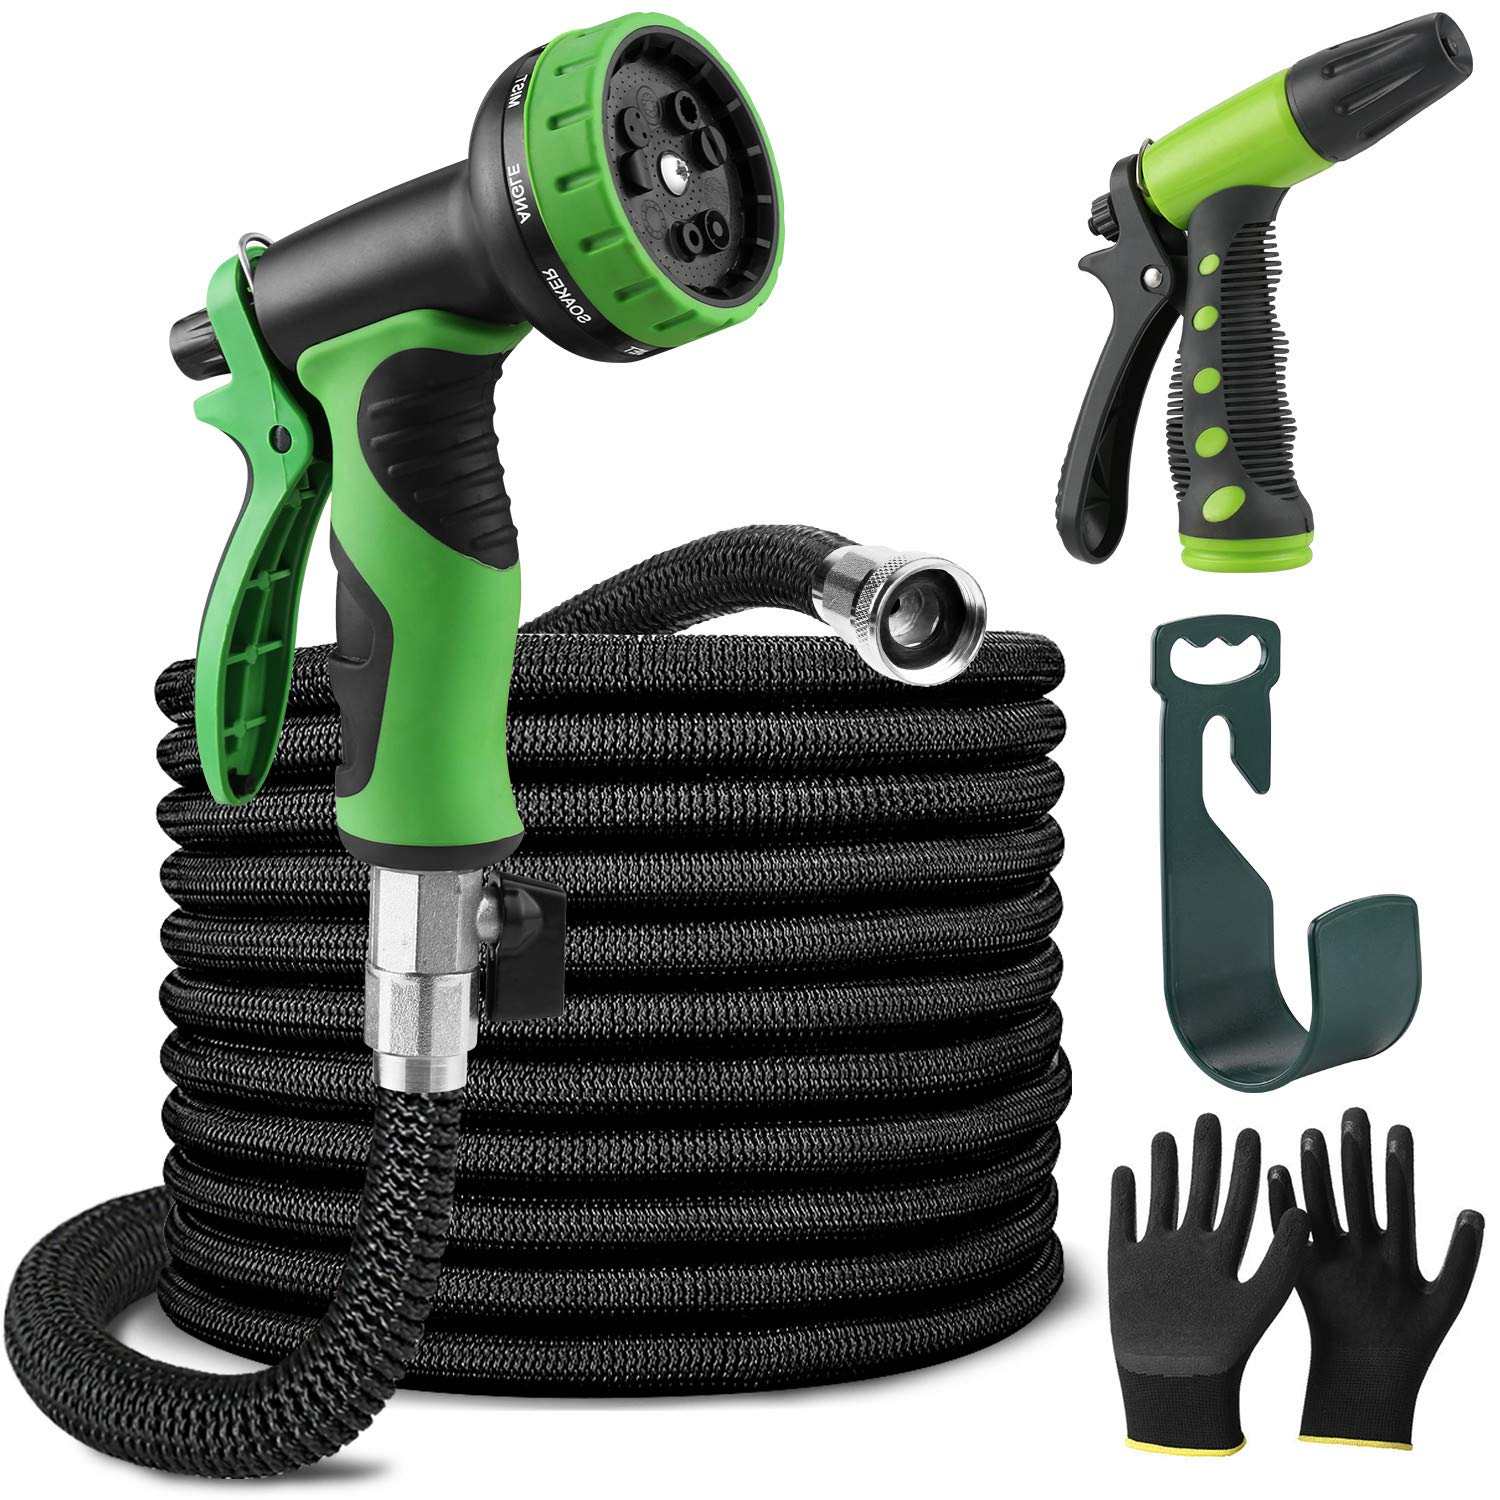 Ultimate Garden Hose Kit 50 ft Kink-Free Lightweight Heavy Duty with 2 Nozzle Sprayer Set with Hook and Gardening Gloves